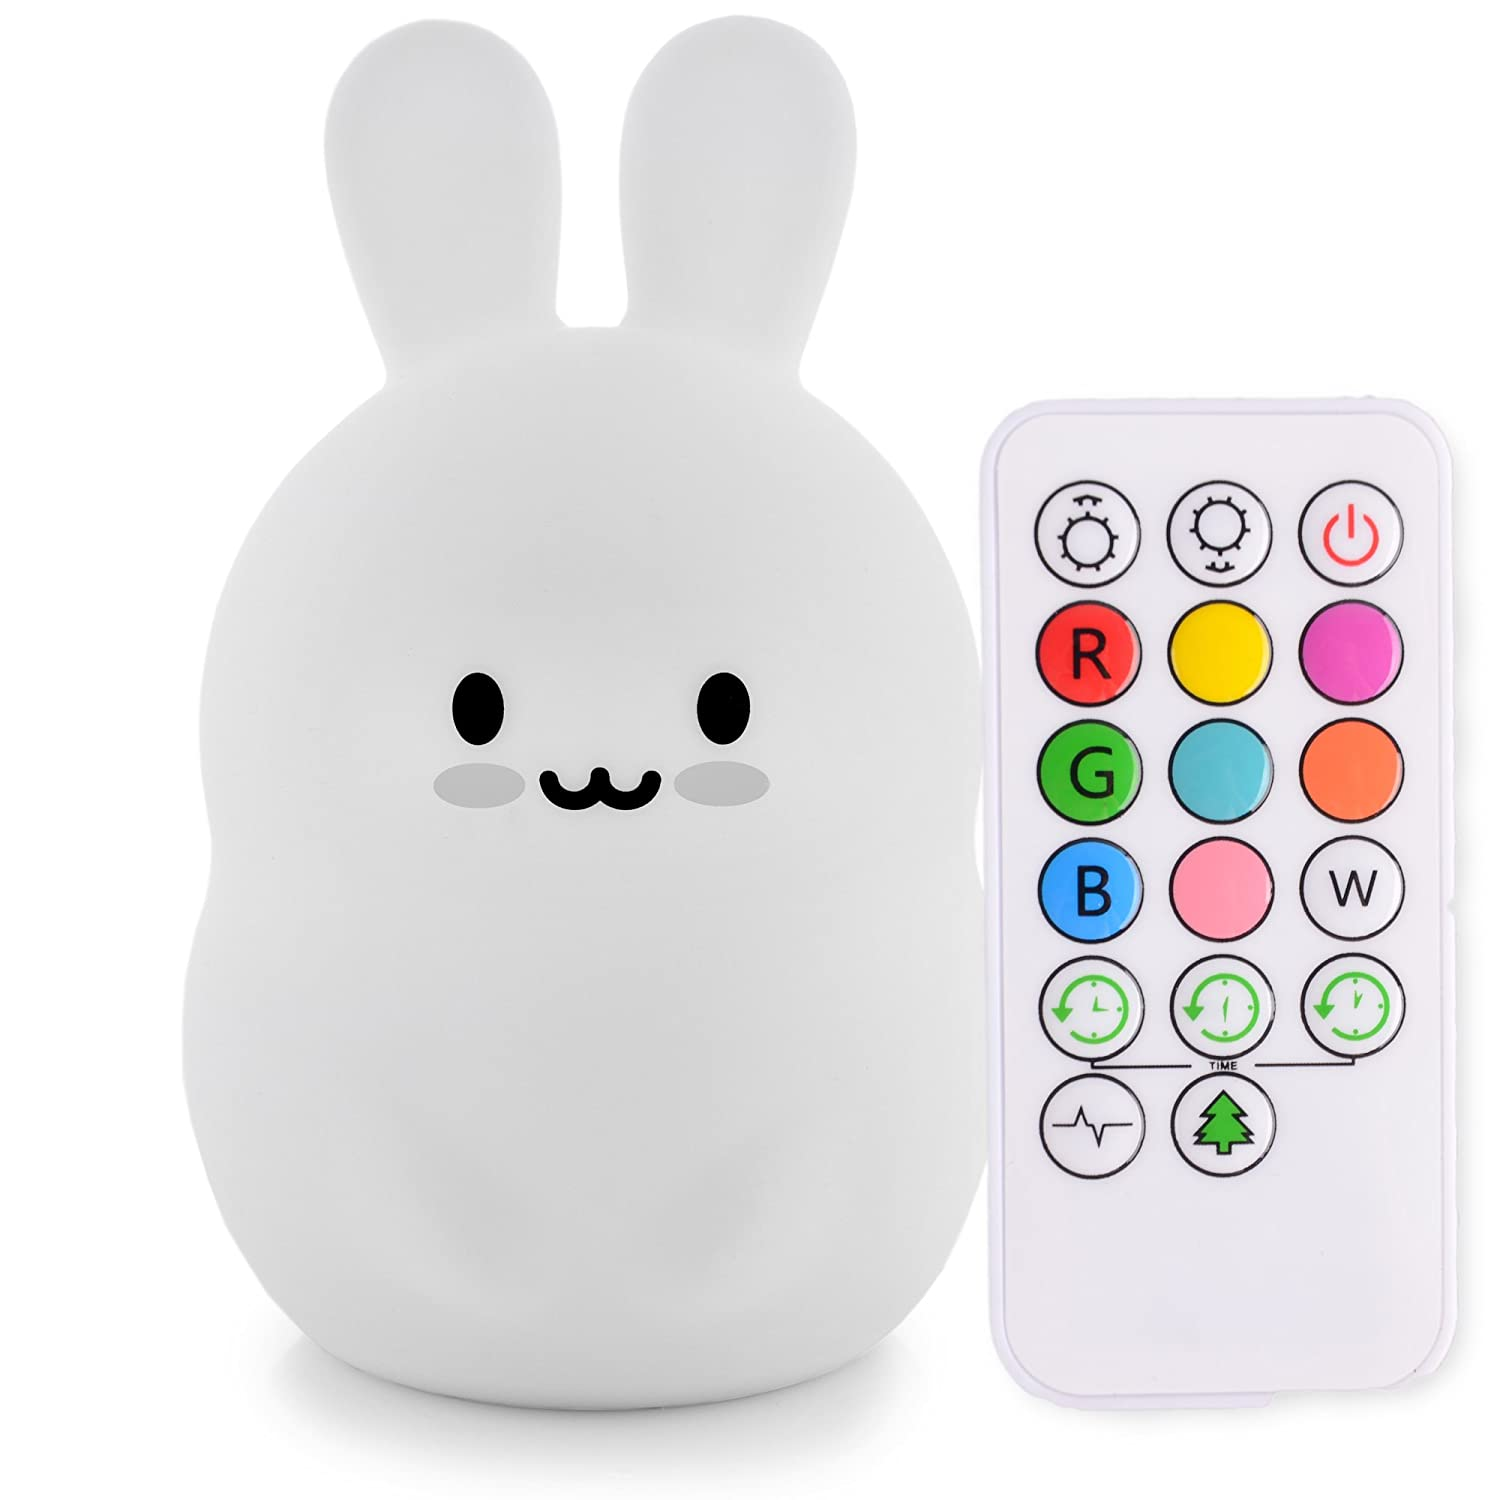 LED Nursery Night Lights for Kids: LumiPets Cute Animal Silicone Baby Night Light with Touch Sensor and Remote - Portable and Rechargeable Infant or Toddler Cool Color Changing Bright Nightlight Lamp NorthWestMade